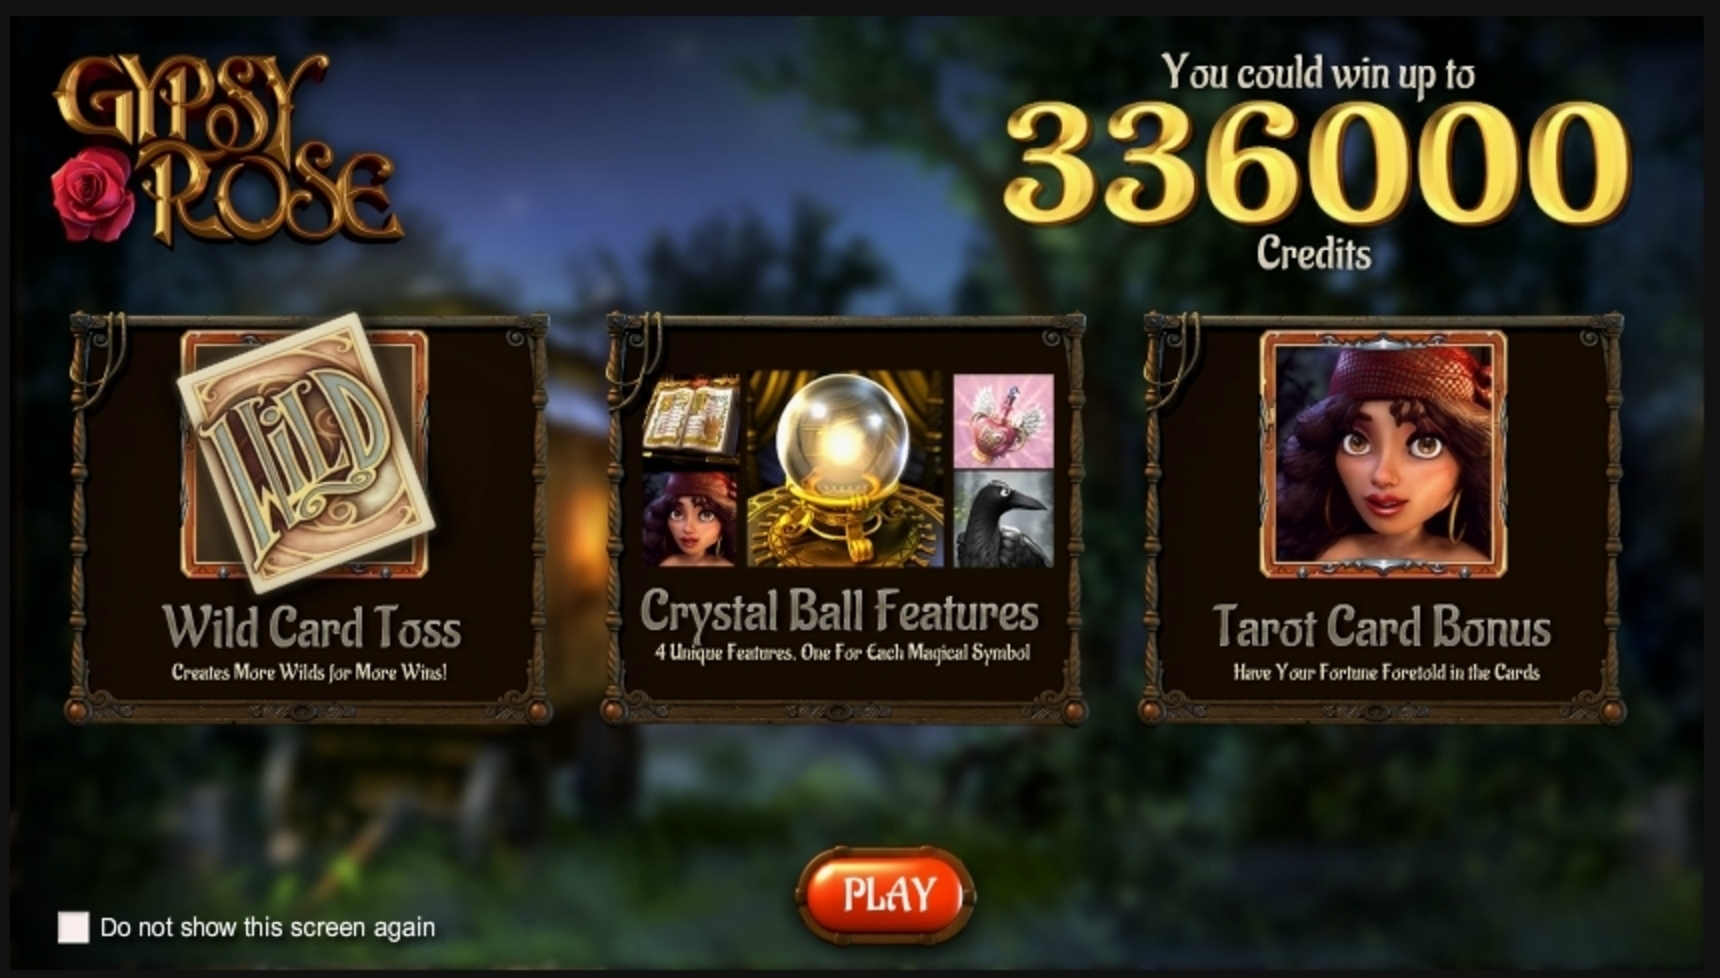 Play Gypsy Rose Free Casino Slot Game by Betsoft